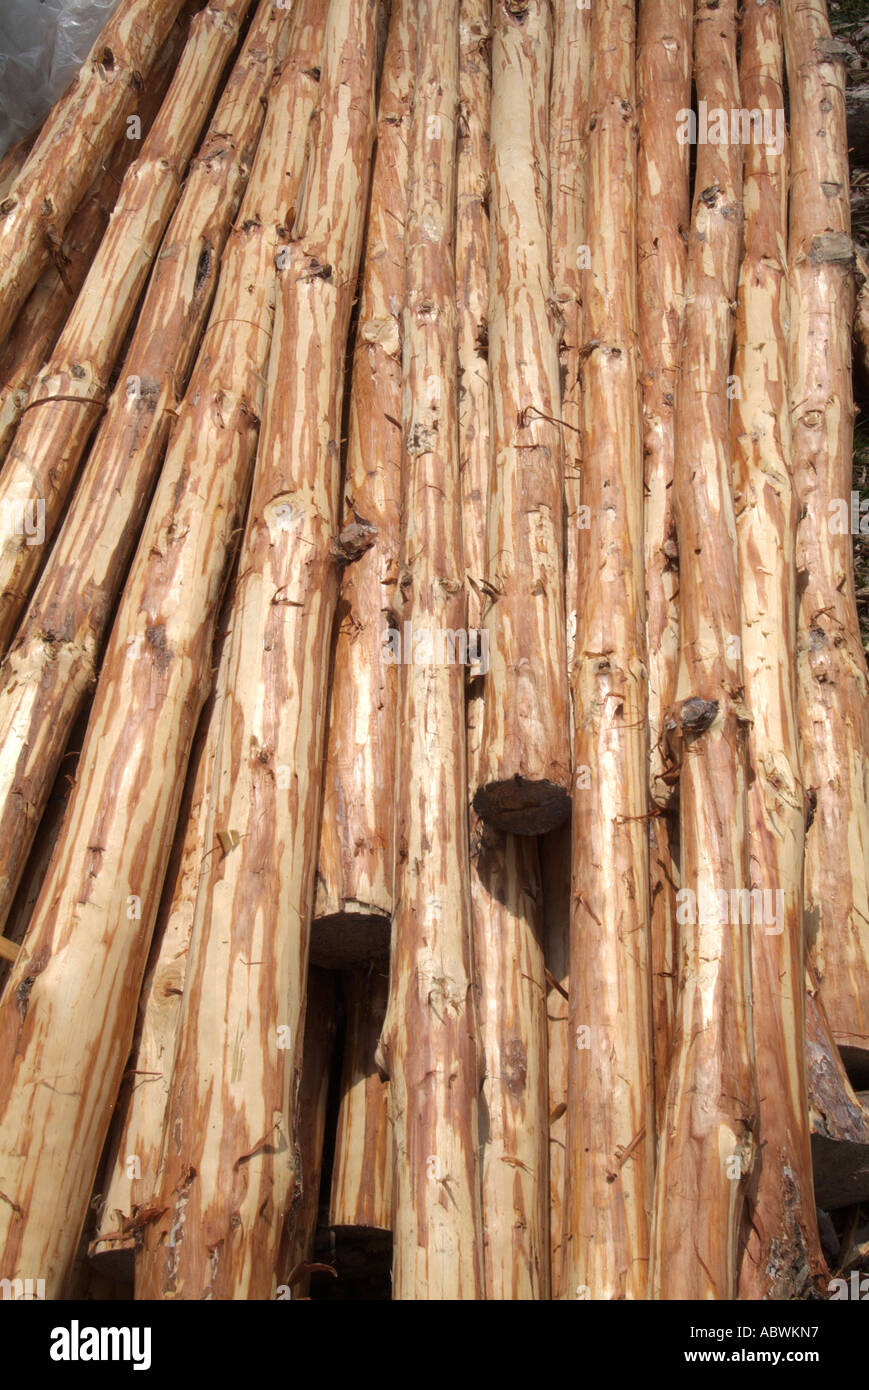 Wooden Pole For Sale Stock Photos & Wooden Pole For Sale